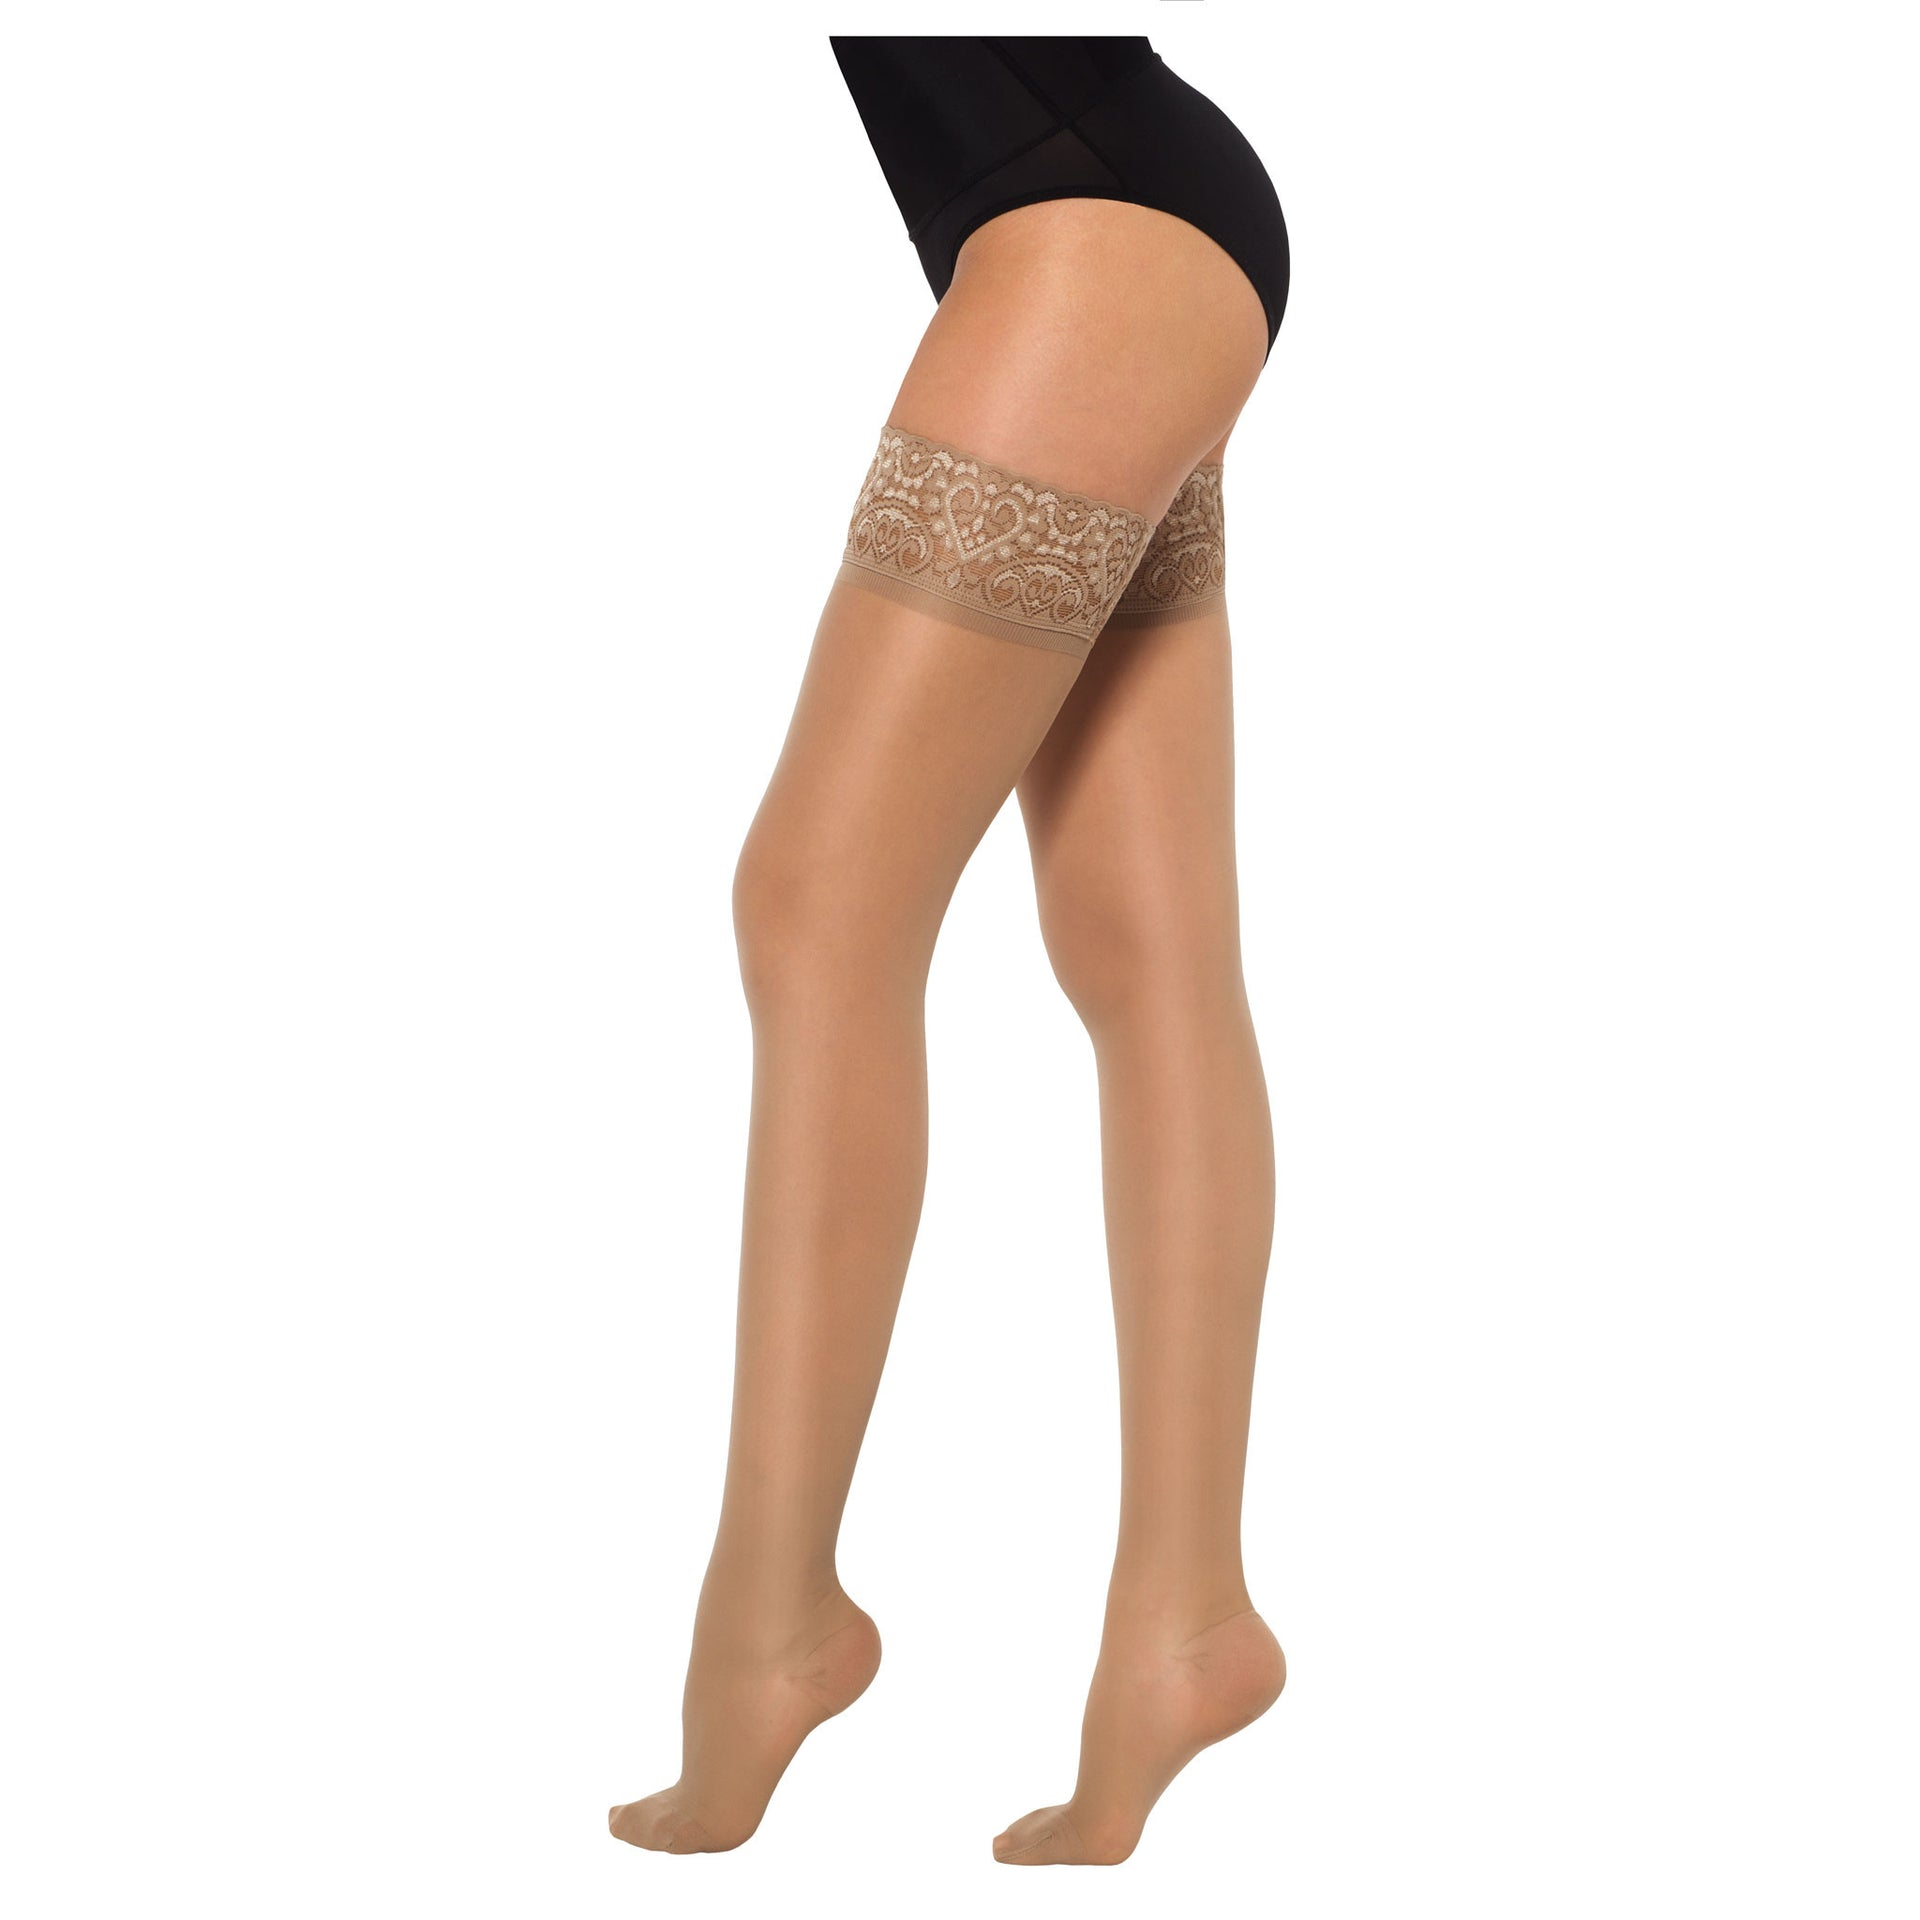 Graduated Compression Thigh Highs